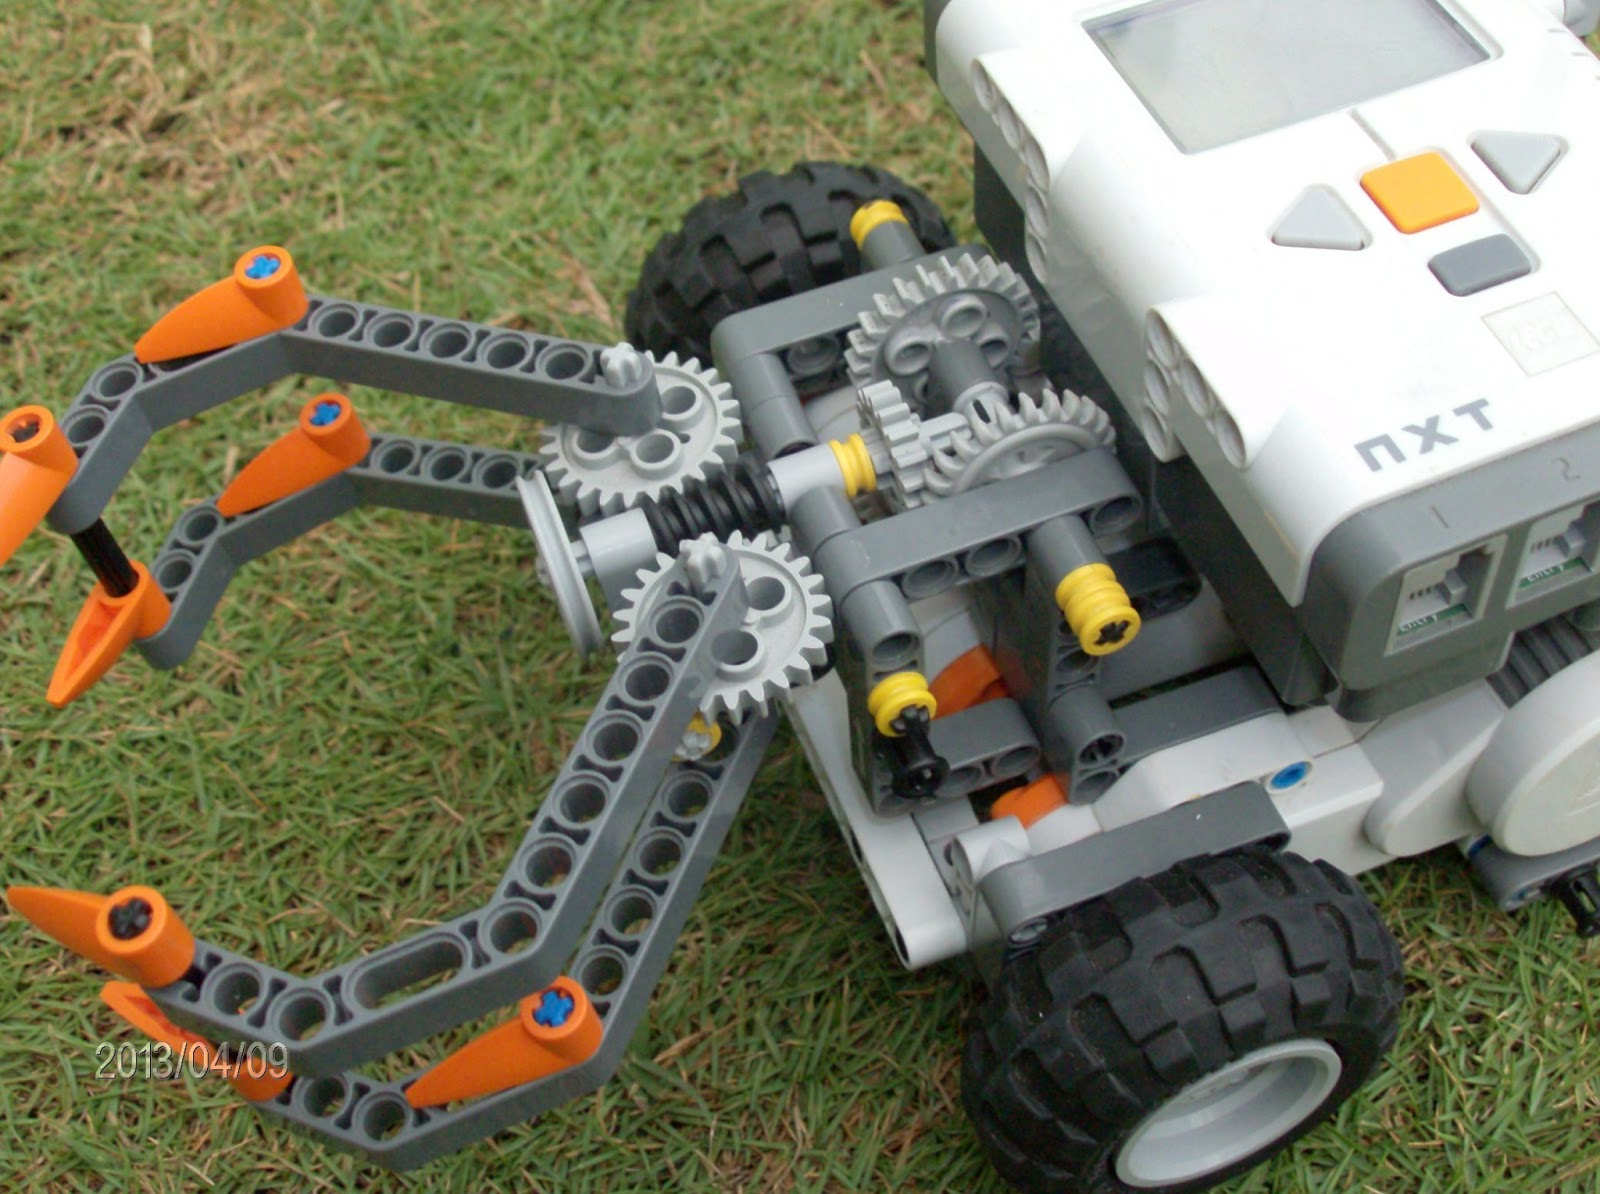 Aula Robótica Dominicana: Lego NXT robot holds and lifts.